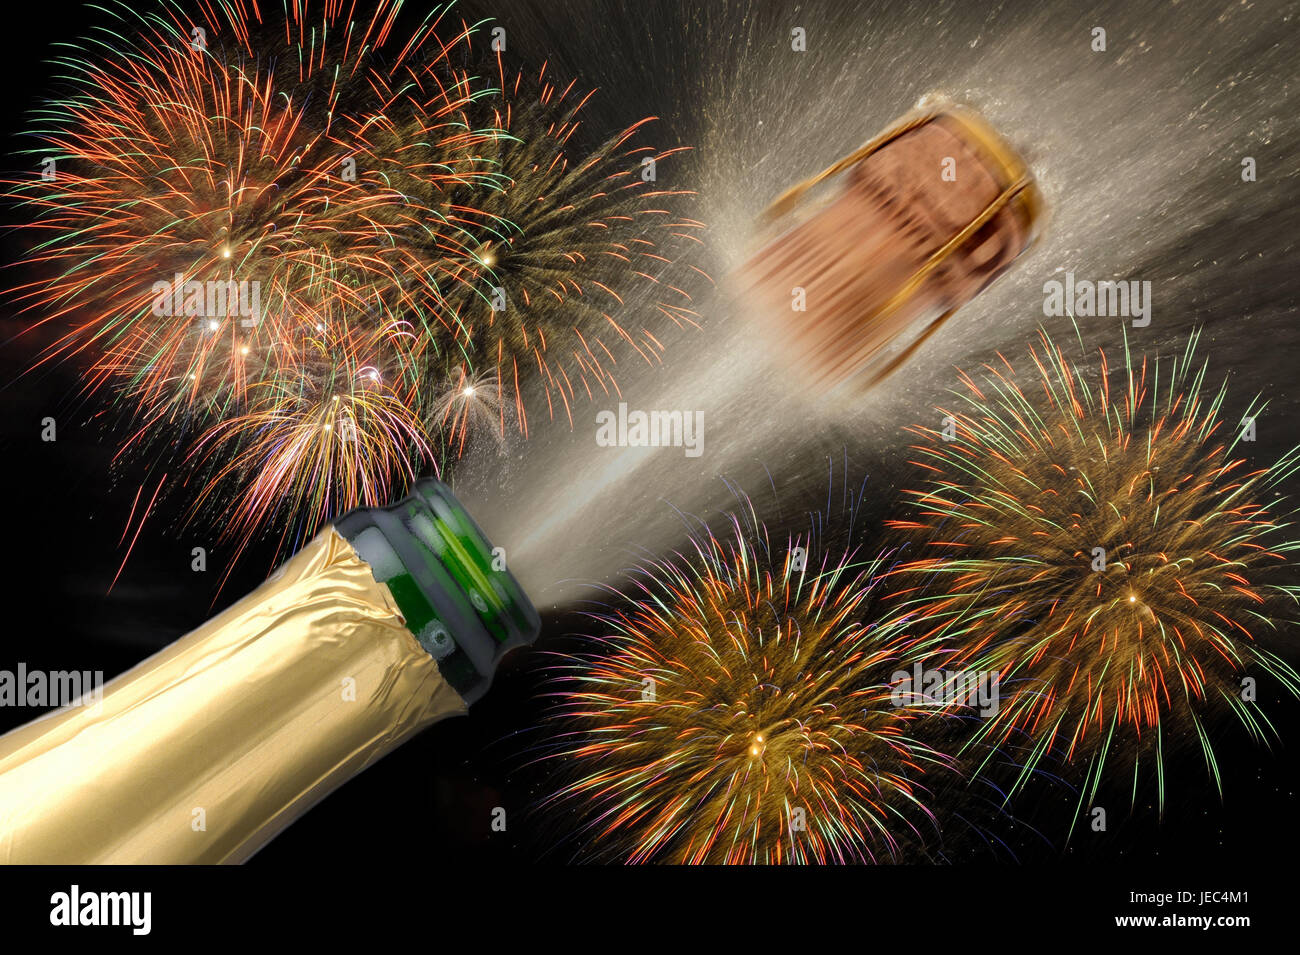 New Year's Eves, corks, belt, fireworks, New Year, champagne, New Year, party, New Year party, year, kick off, - Stock Image